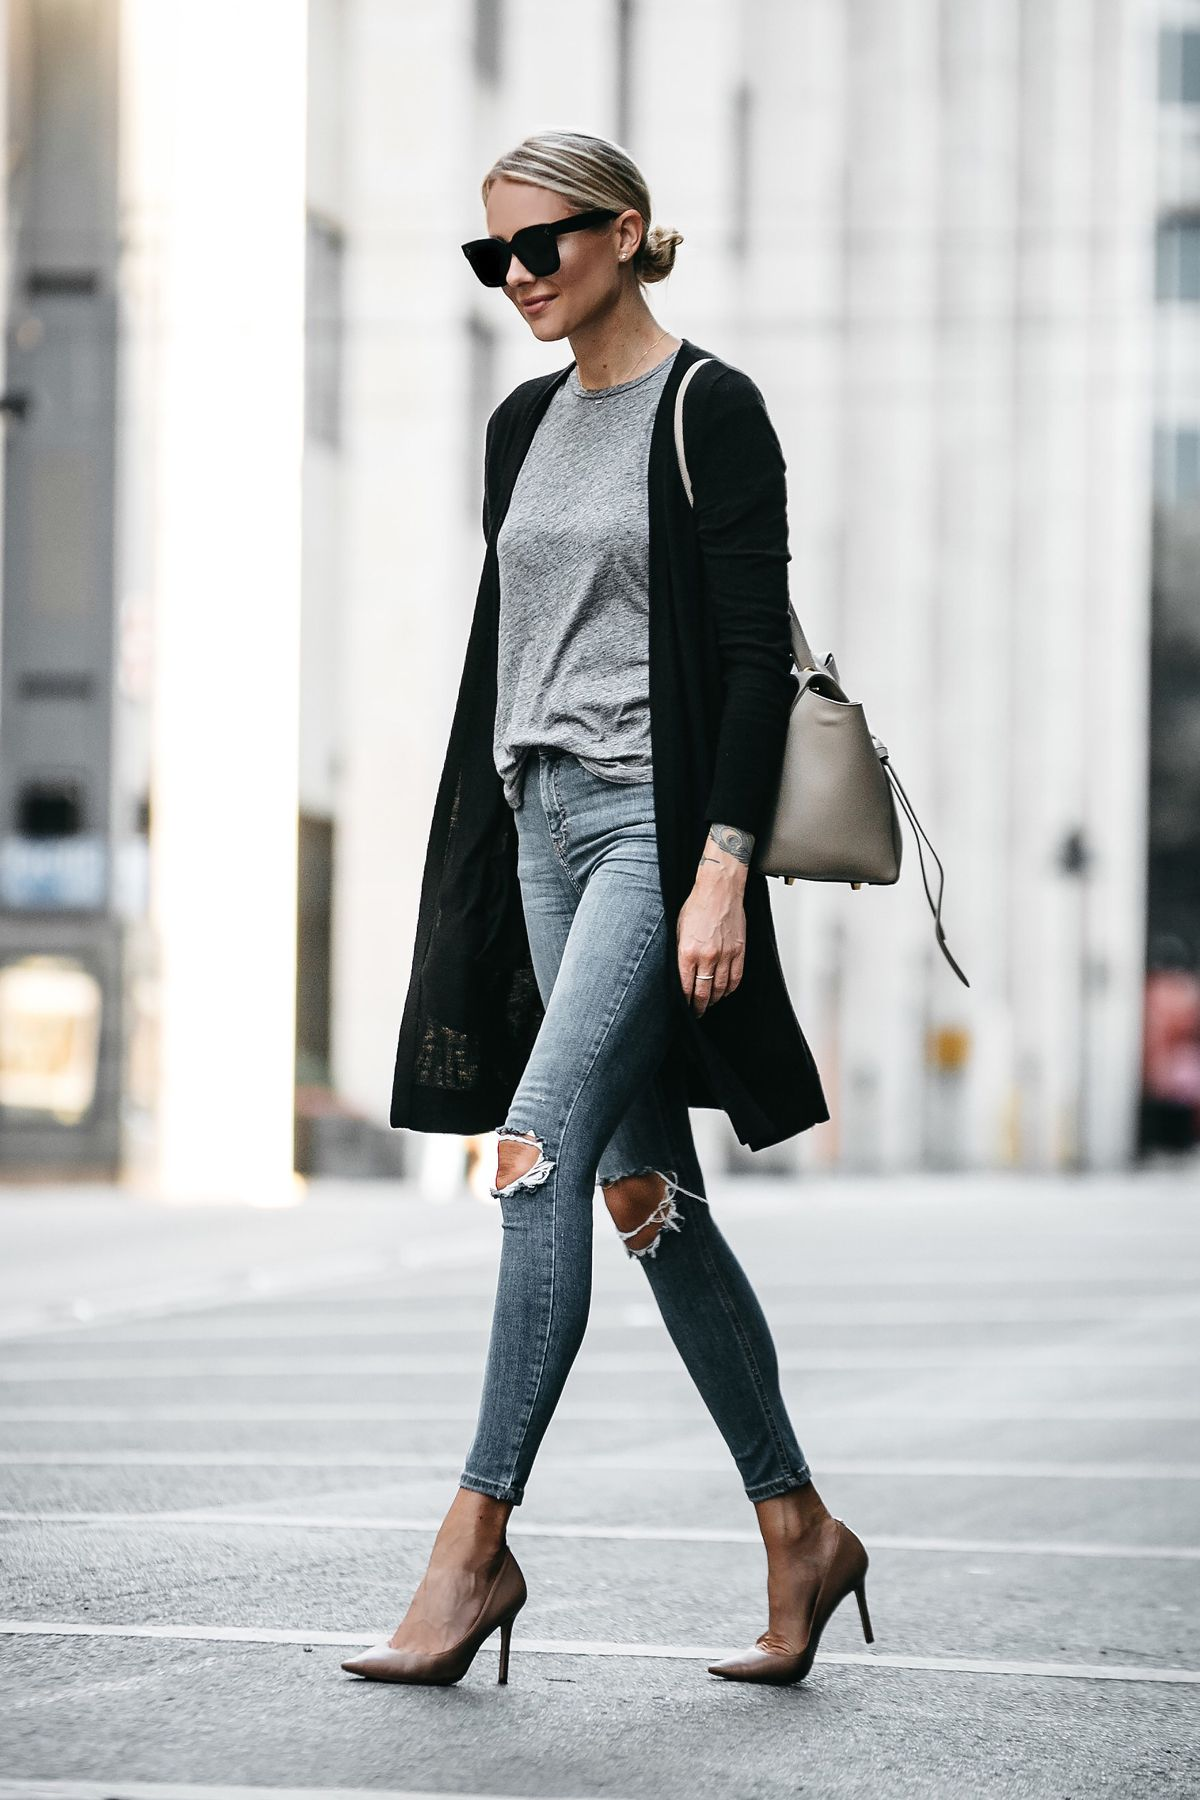 23525790a5 Blonde Woman Wearing Long Black Cardigan Grey Tshirt Topshop Ripped Skinny  Jeans Nude Pumps Outfit Celine Belt Bag Fashion Jackson Dallas Blogger  Fashion ...